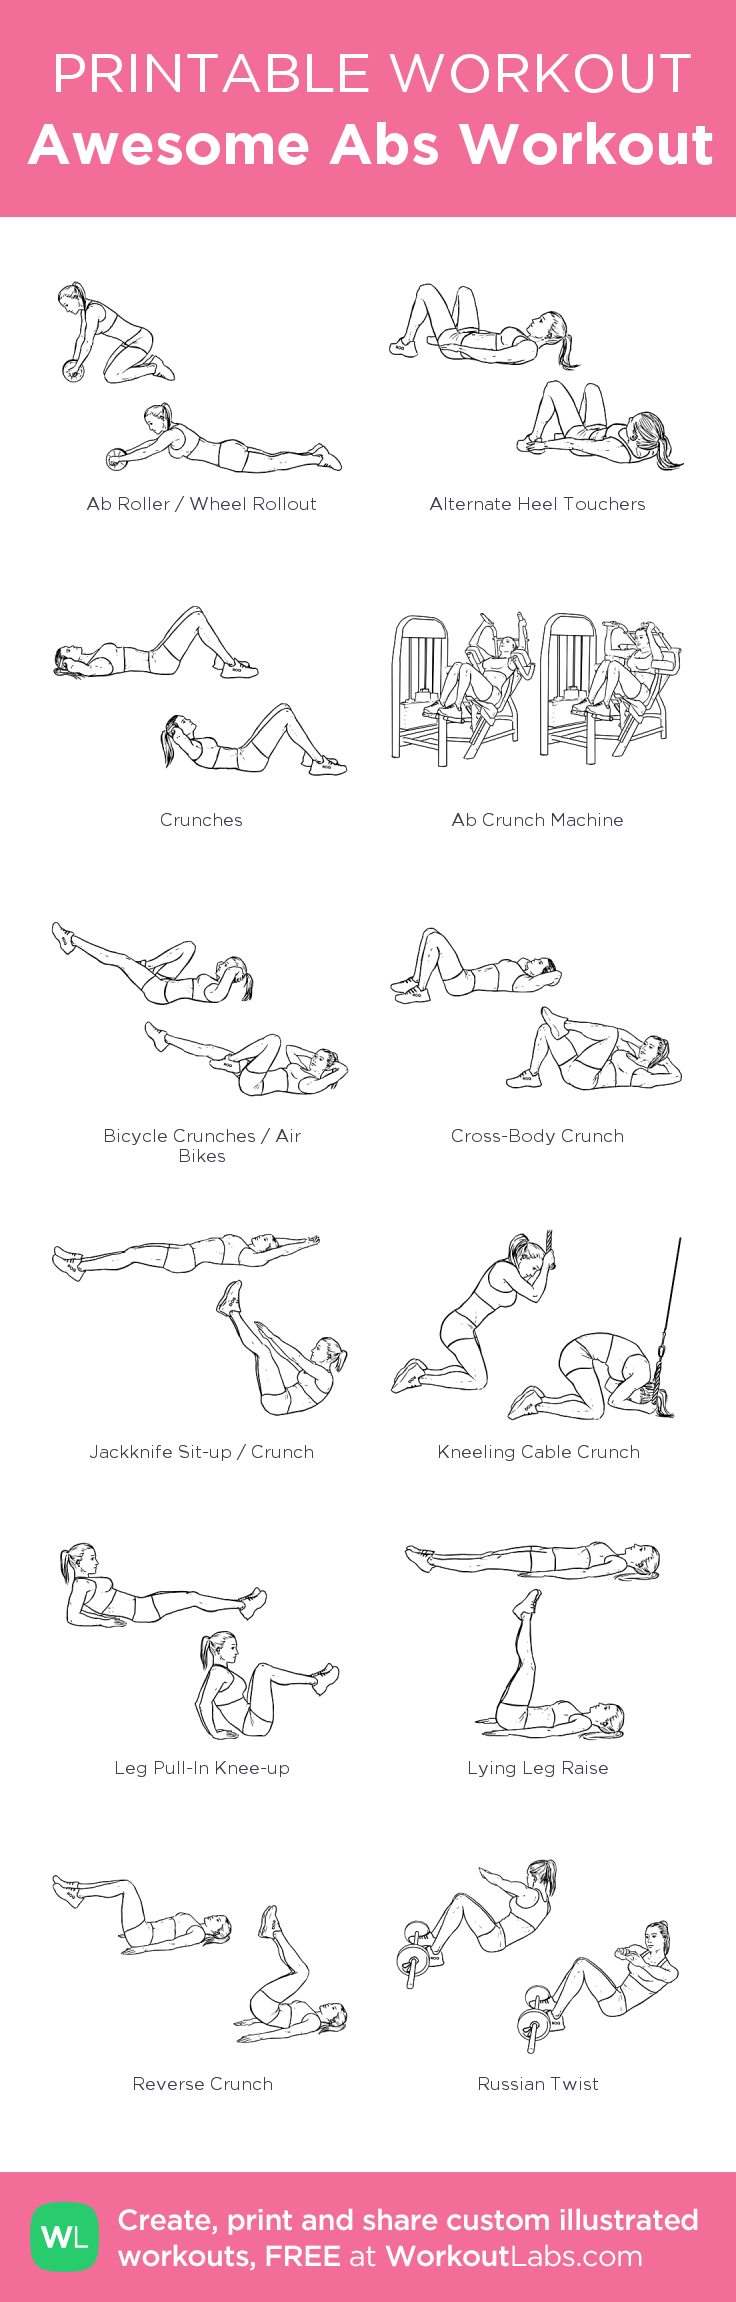 Awesome Abs Workout – my custom workout created at